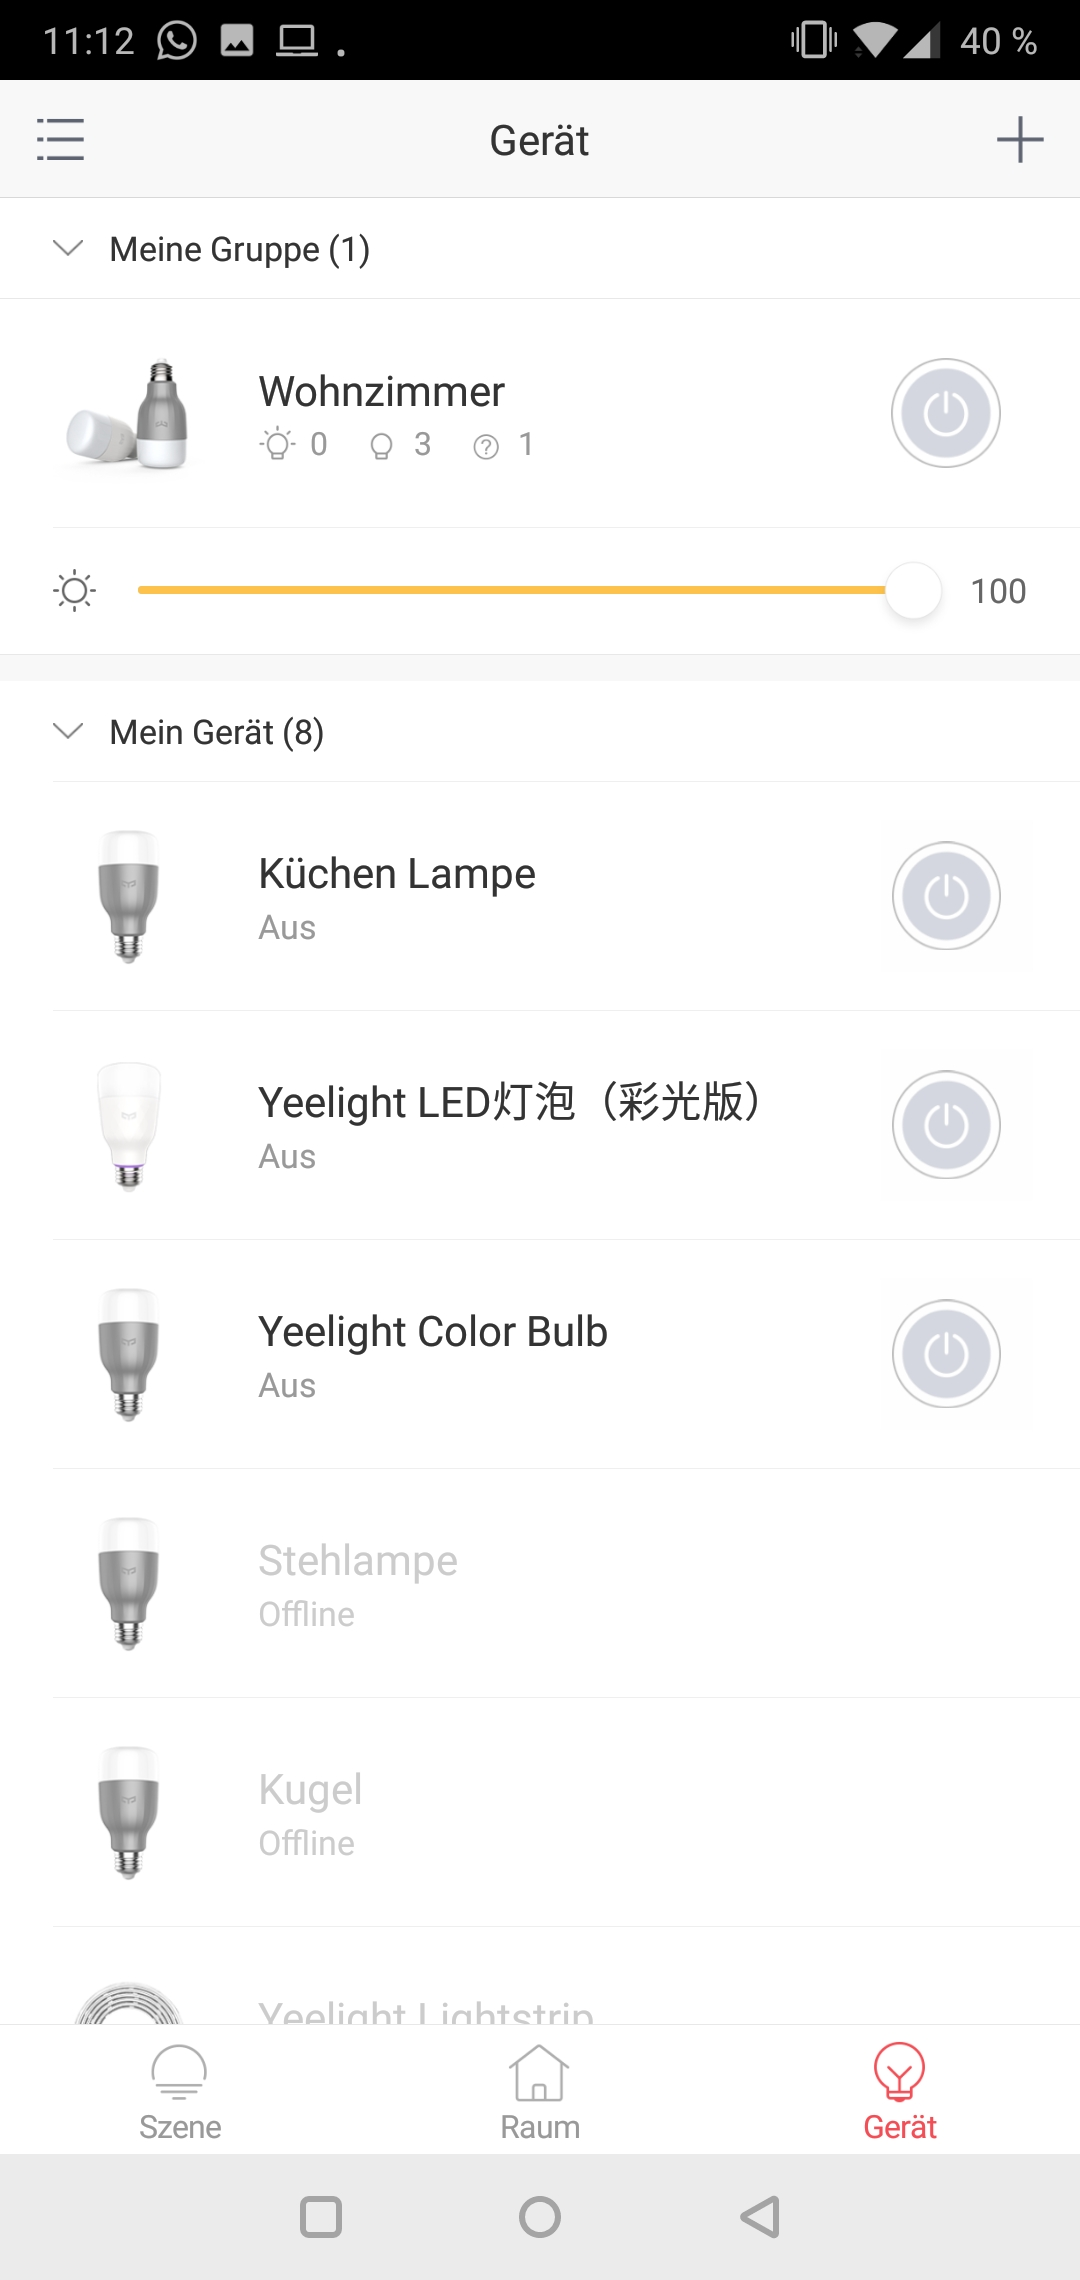 Yeelight 2nd Generation Smart Bulb Glühbirne Testbericht Screenshot Yeelight App Google Smart Home 6